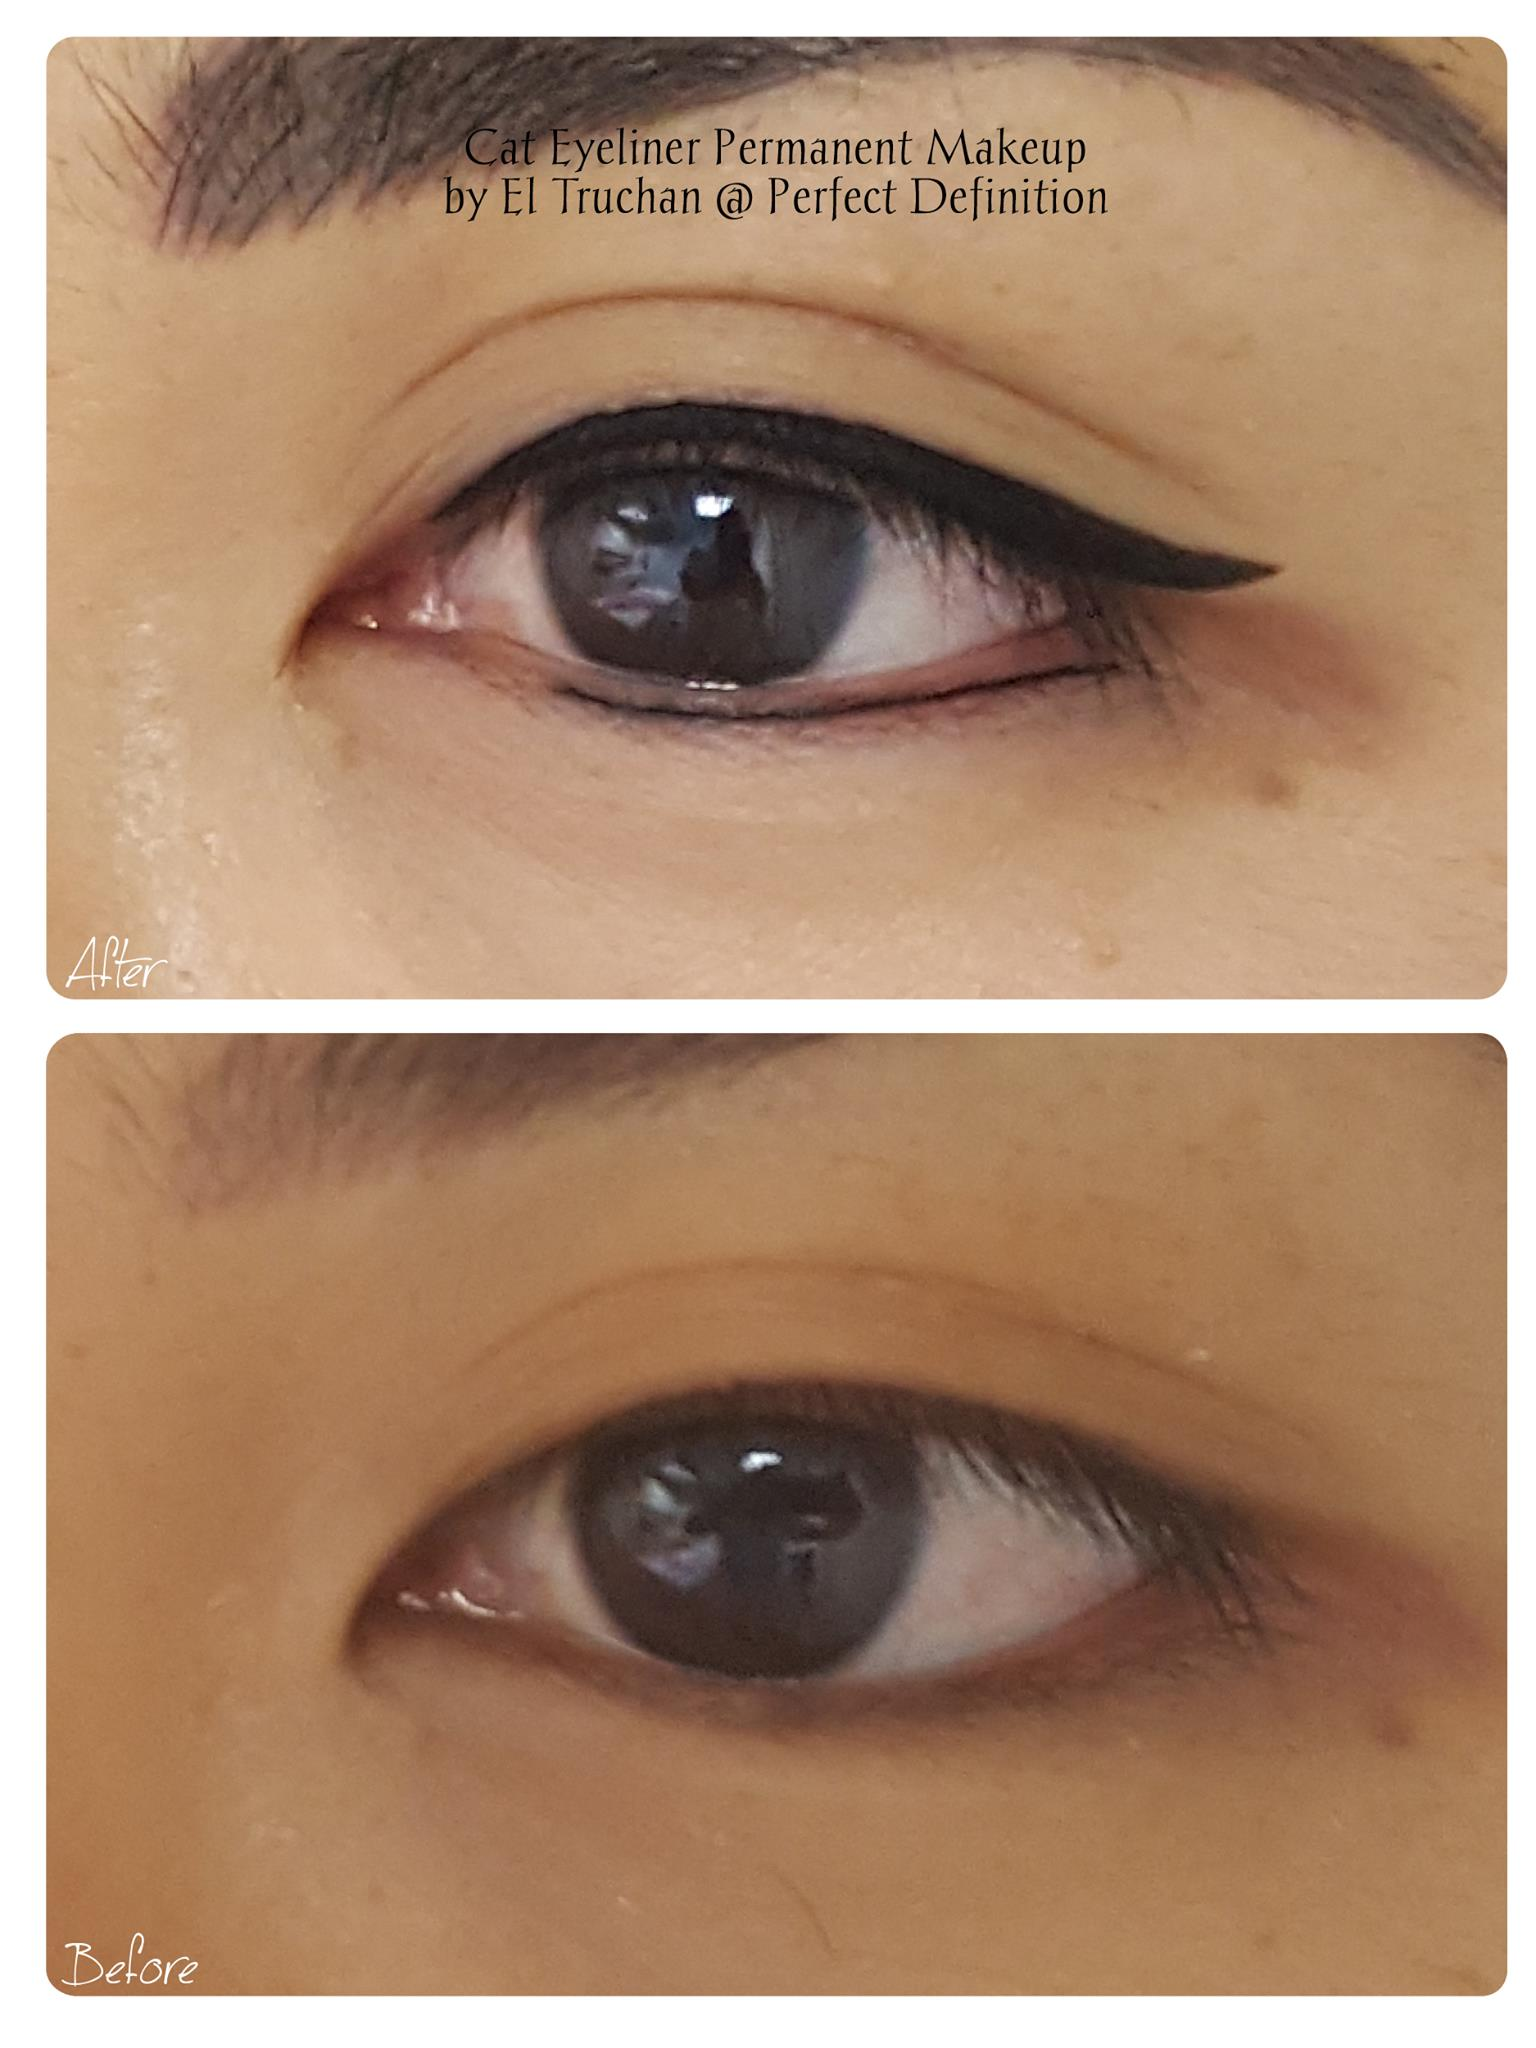 Asian Cat Eyeliner Permanent Makeup by E